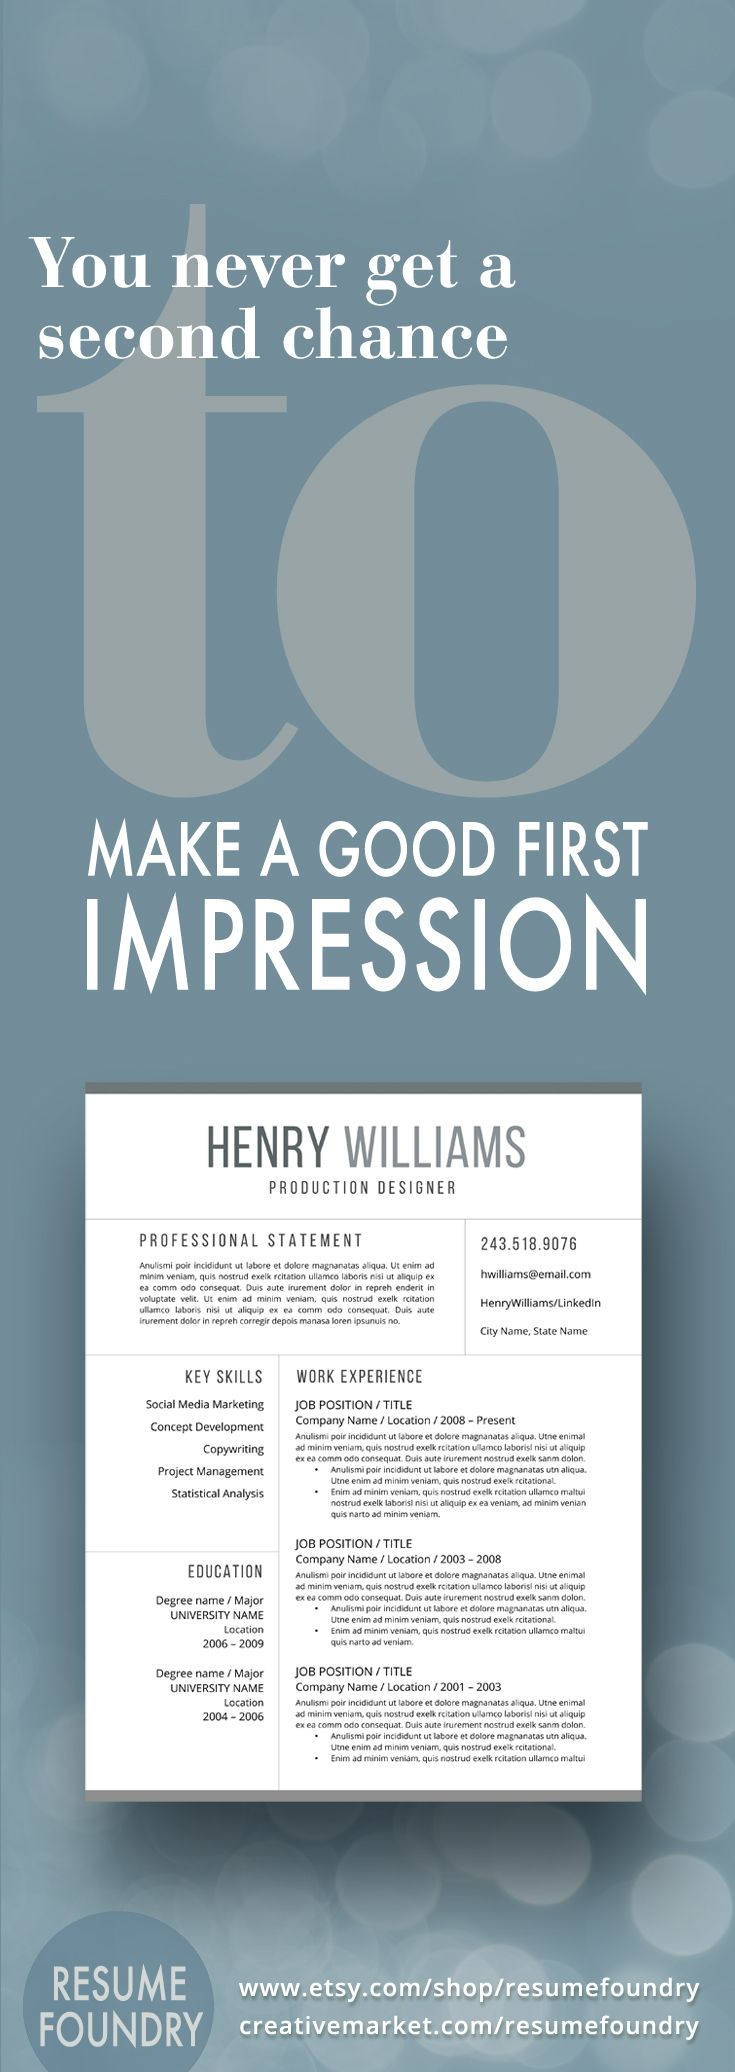 104 Best Resume Templates Etsy Images On Pinterest Resume